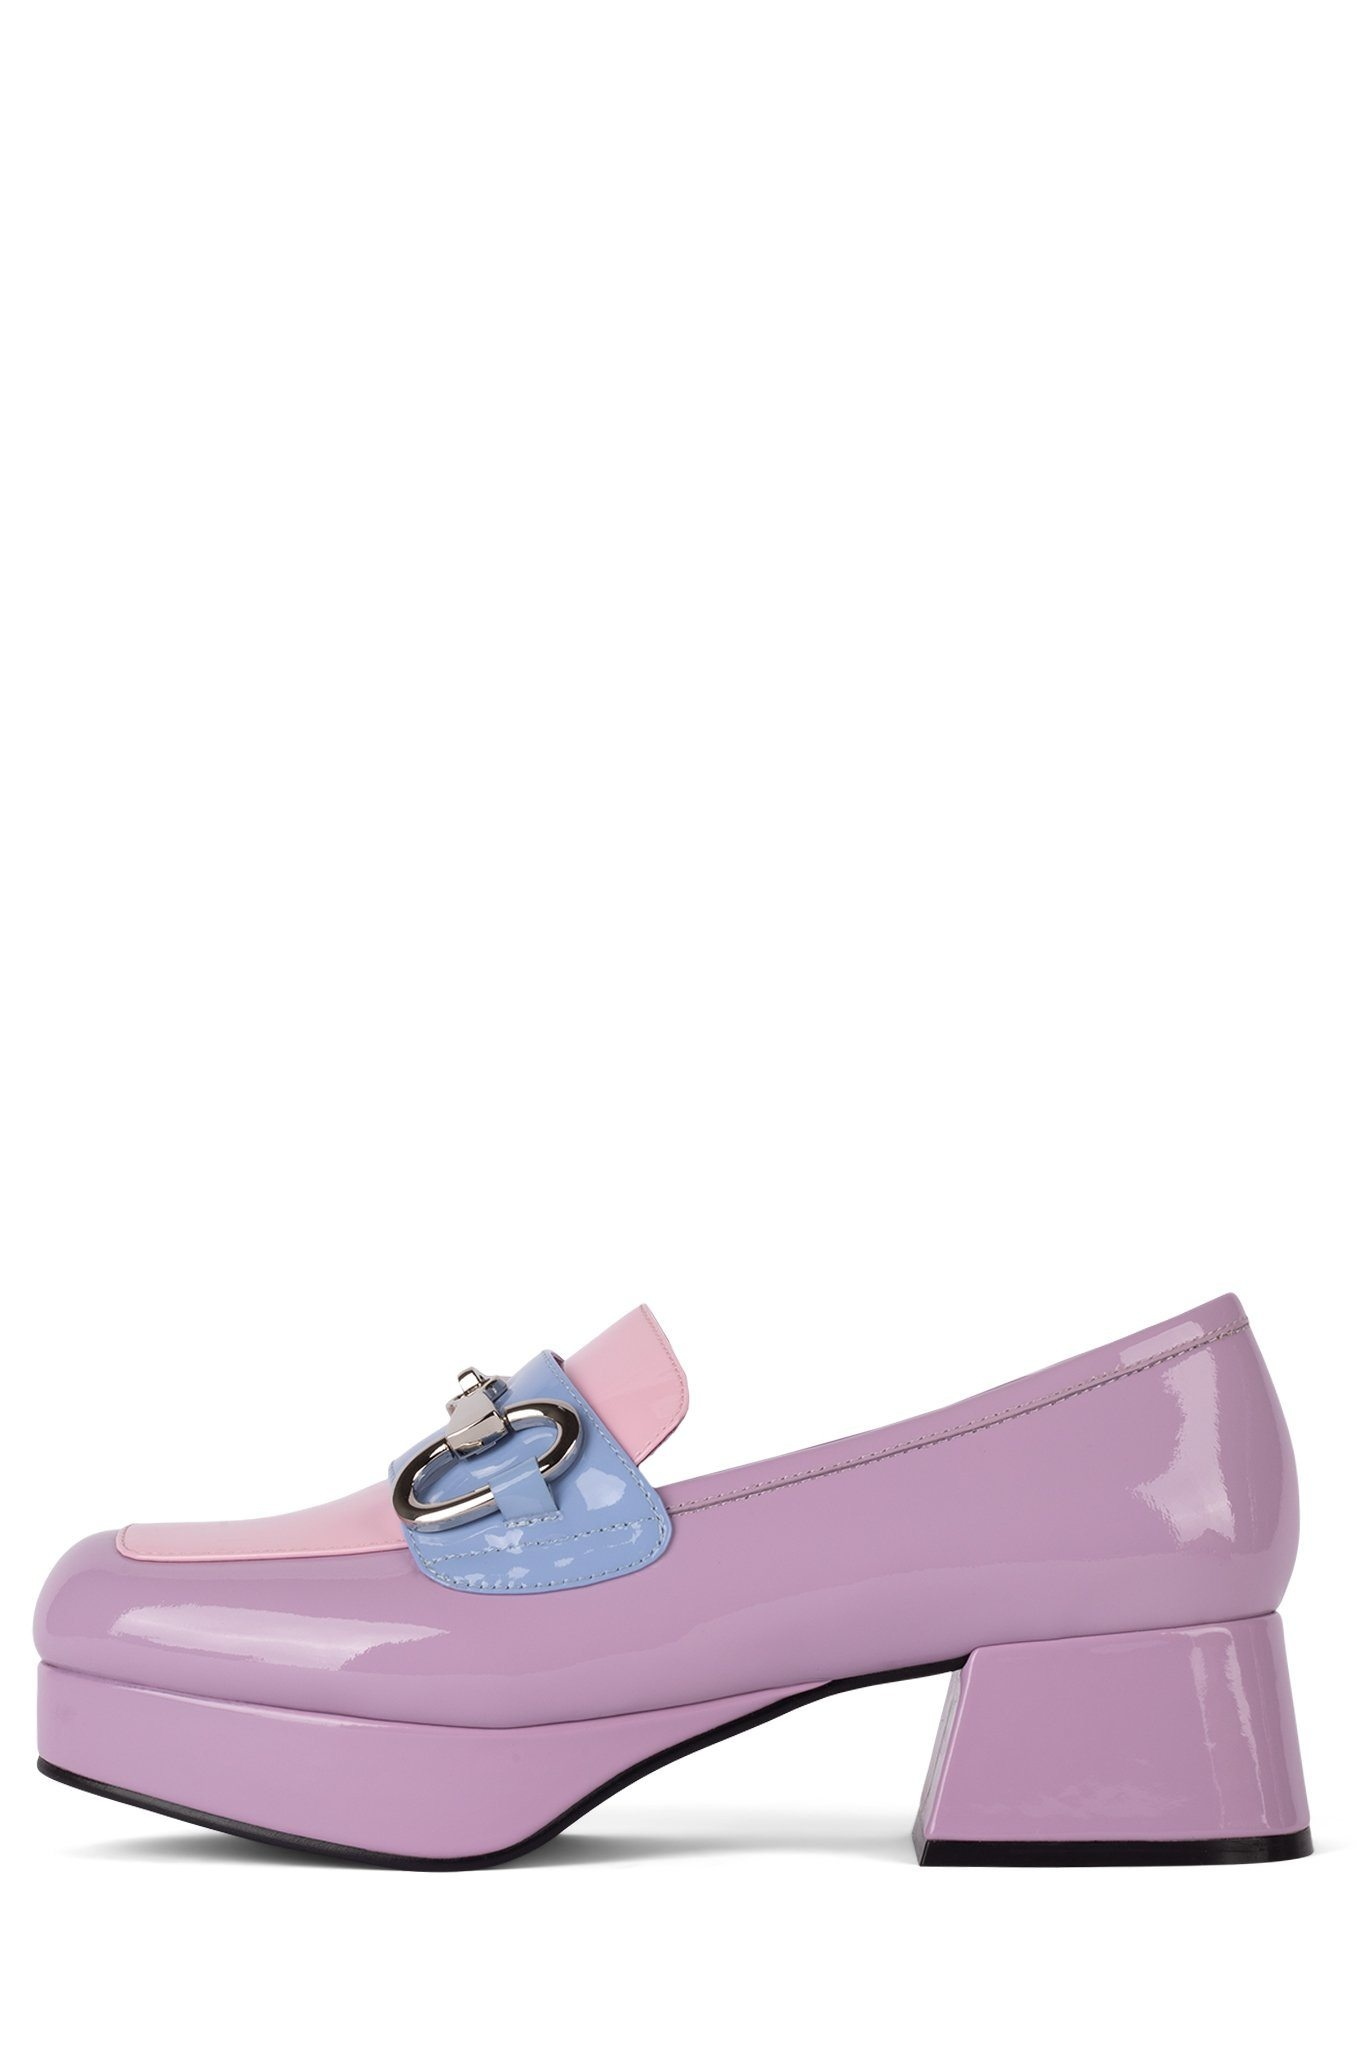 Jeffrey Campbell Student-2 Lilac Pink Prwkl Patent Combo